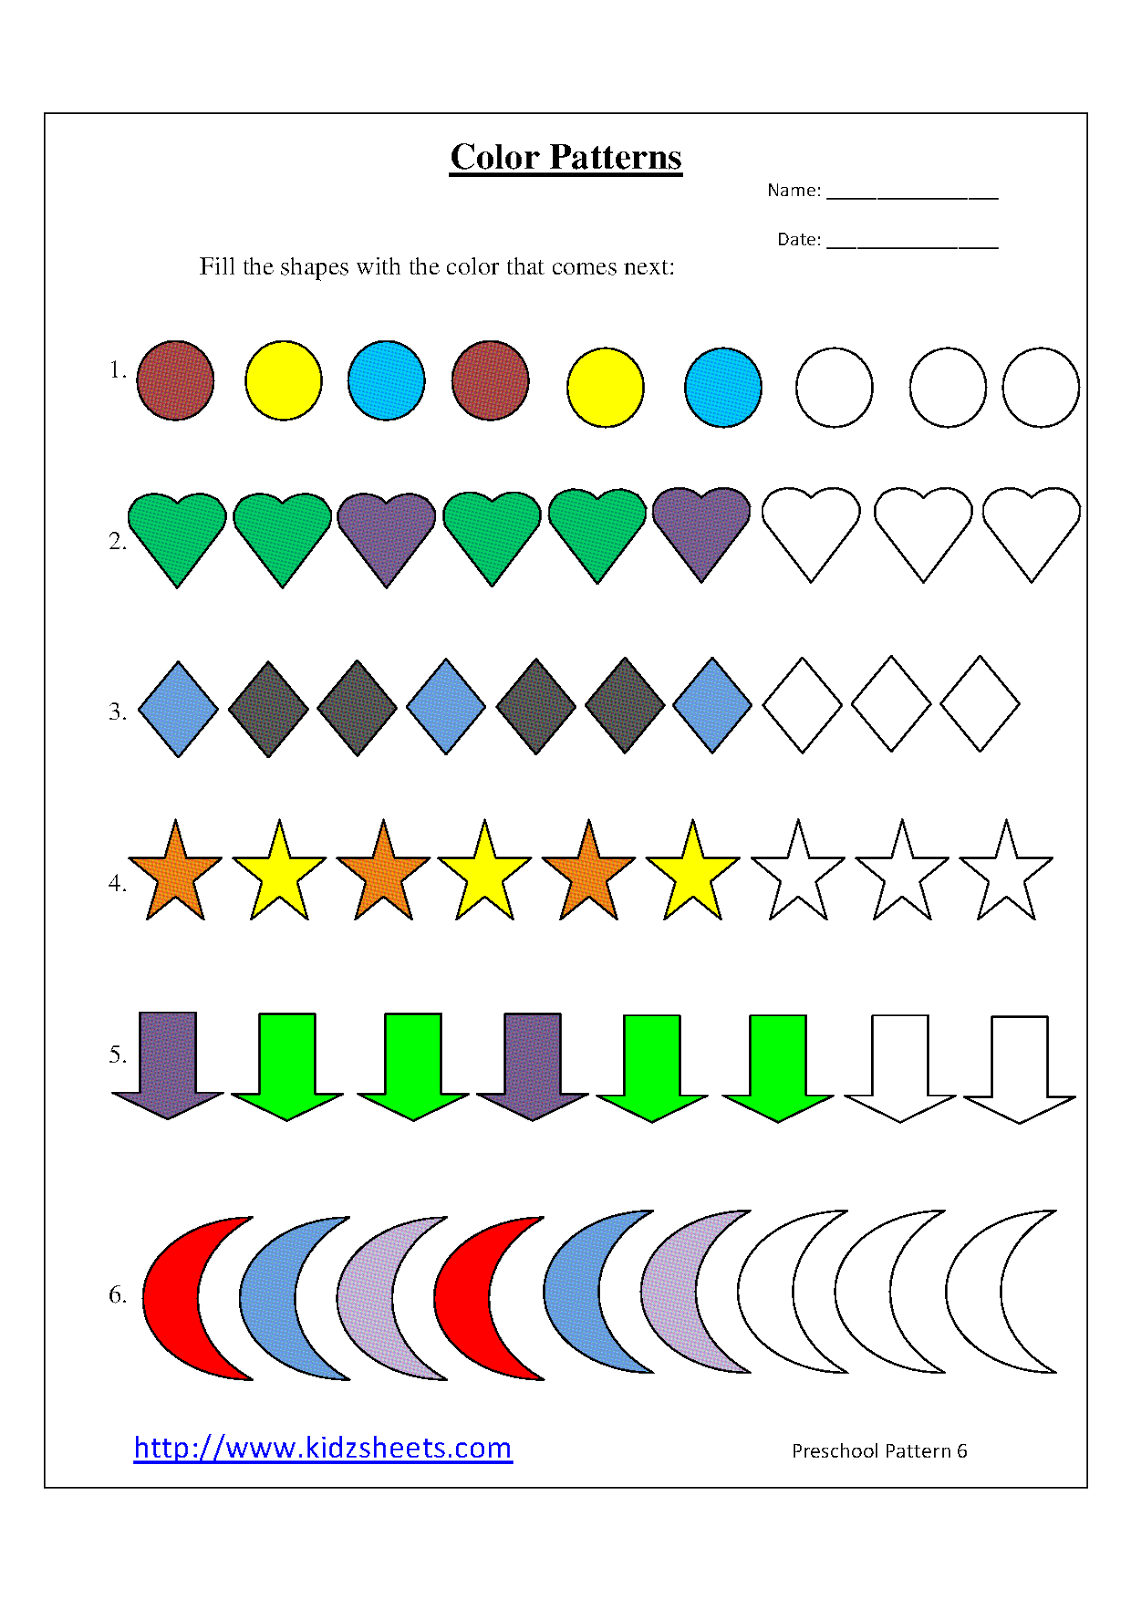 Preschool Pattern Worksheets Kindergarten